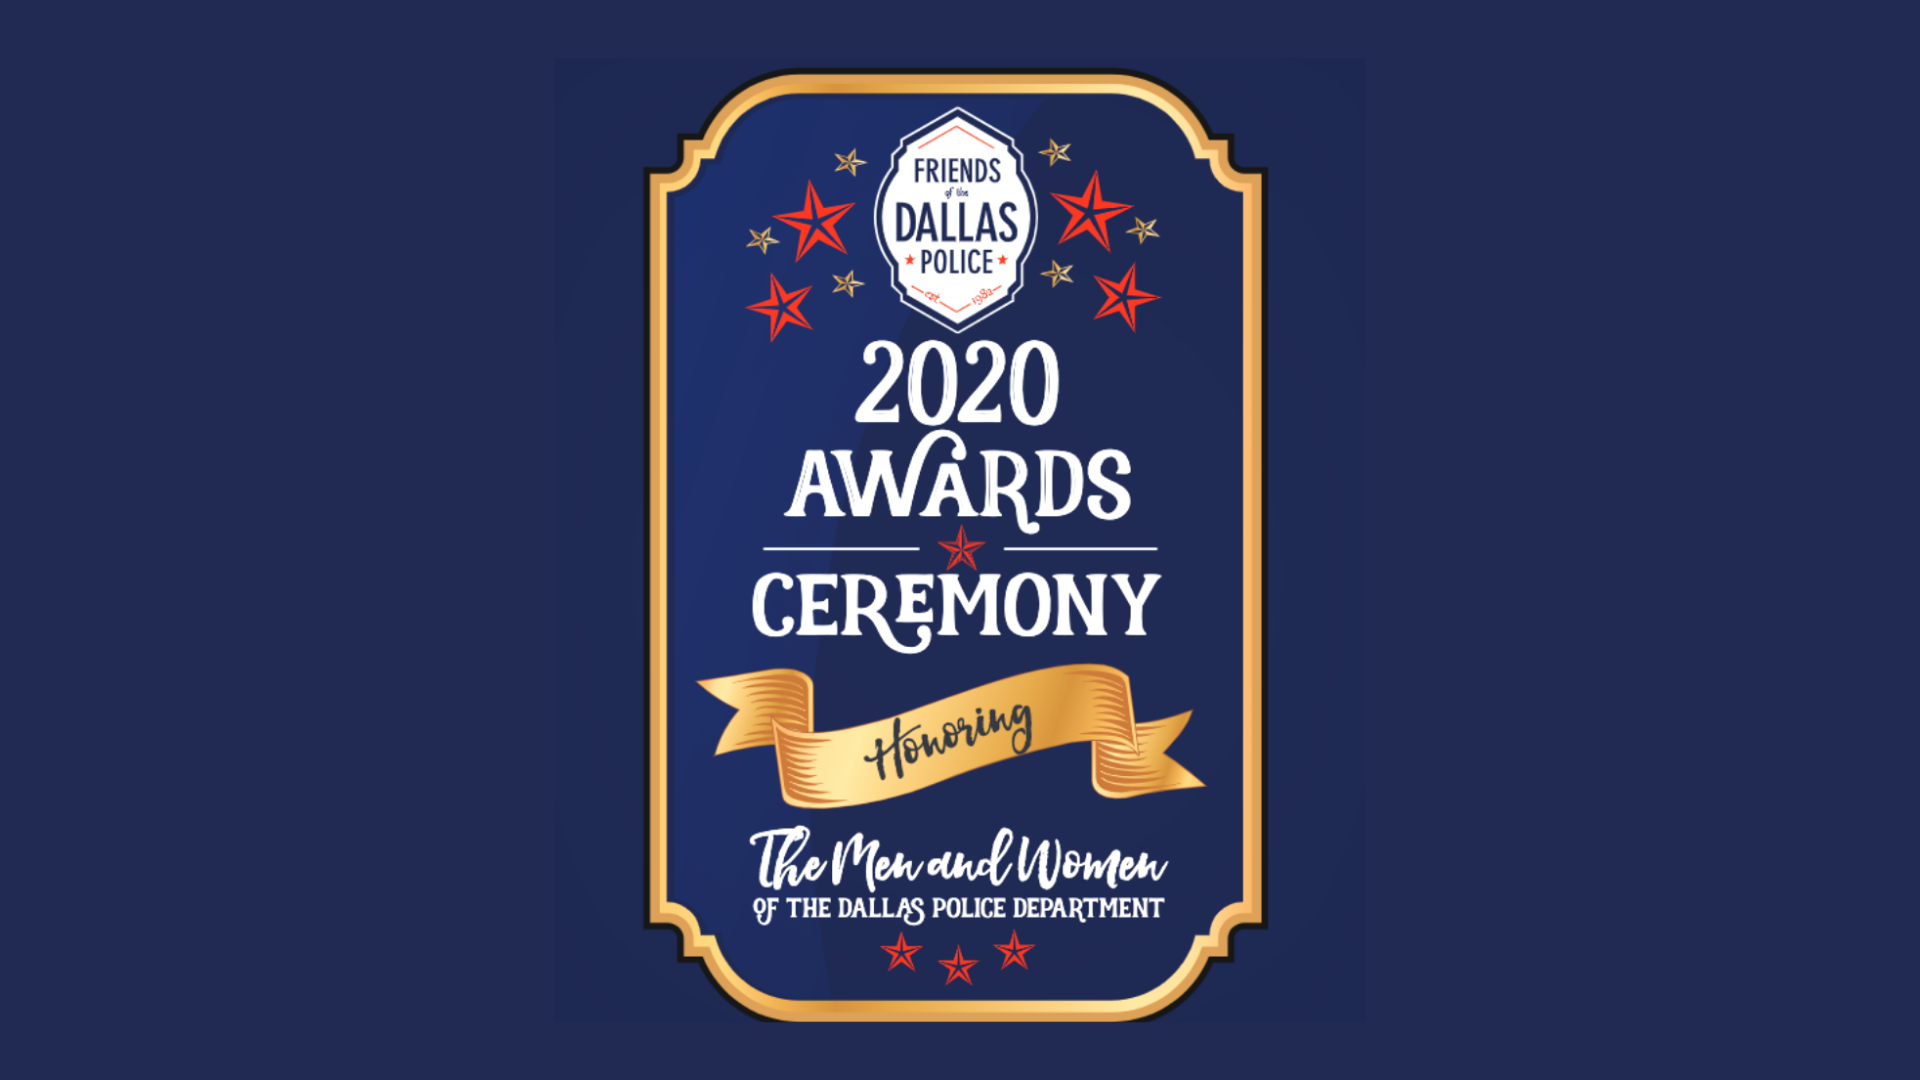 Friends of Dallas Police Awards Ceremony Honors 224 Outstanding DPD Officers and Employees Via Virtual Live Stream Event